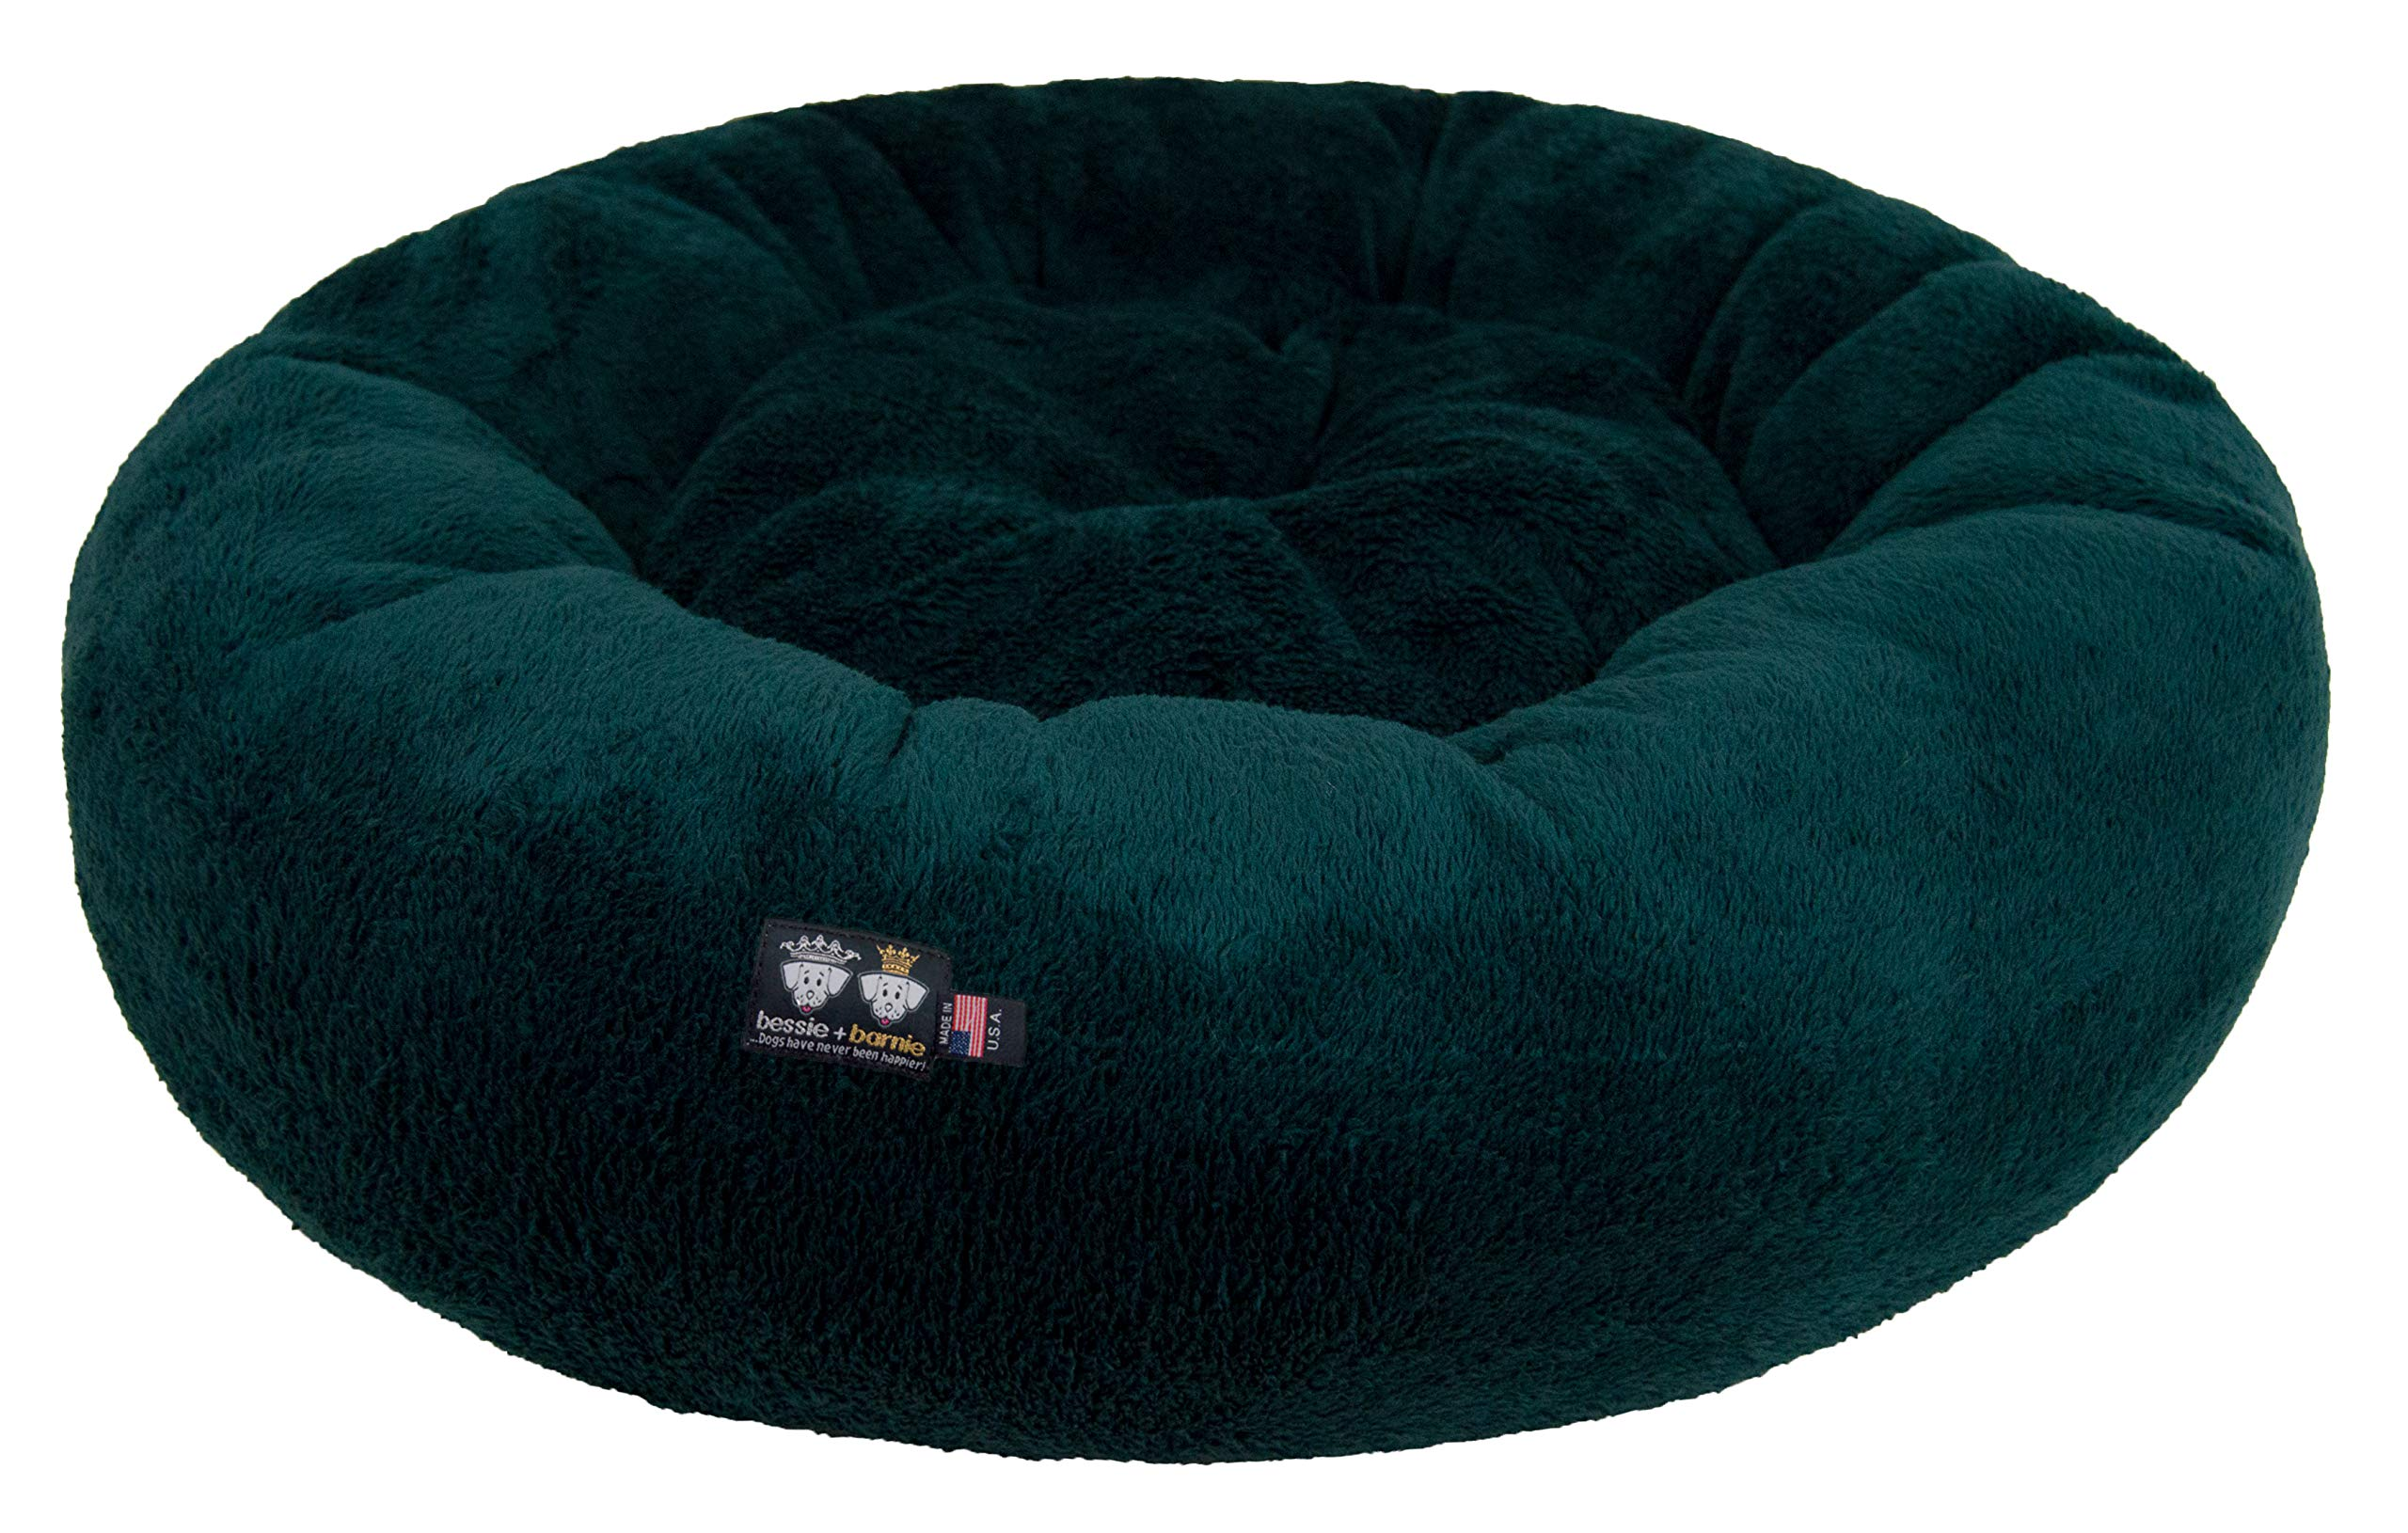 BESSIE AND BARNIE Ultra Plush Deluxe Comfort Pet Dog & Cat Hunter Green Snuggle Bed (Multiple Sizes) - Machine Washable, Made in The USA, Reversible, Durable Soft Fabrics, S - 23'' x 23''